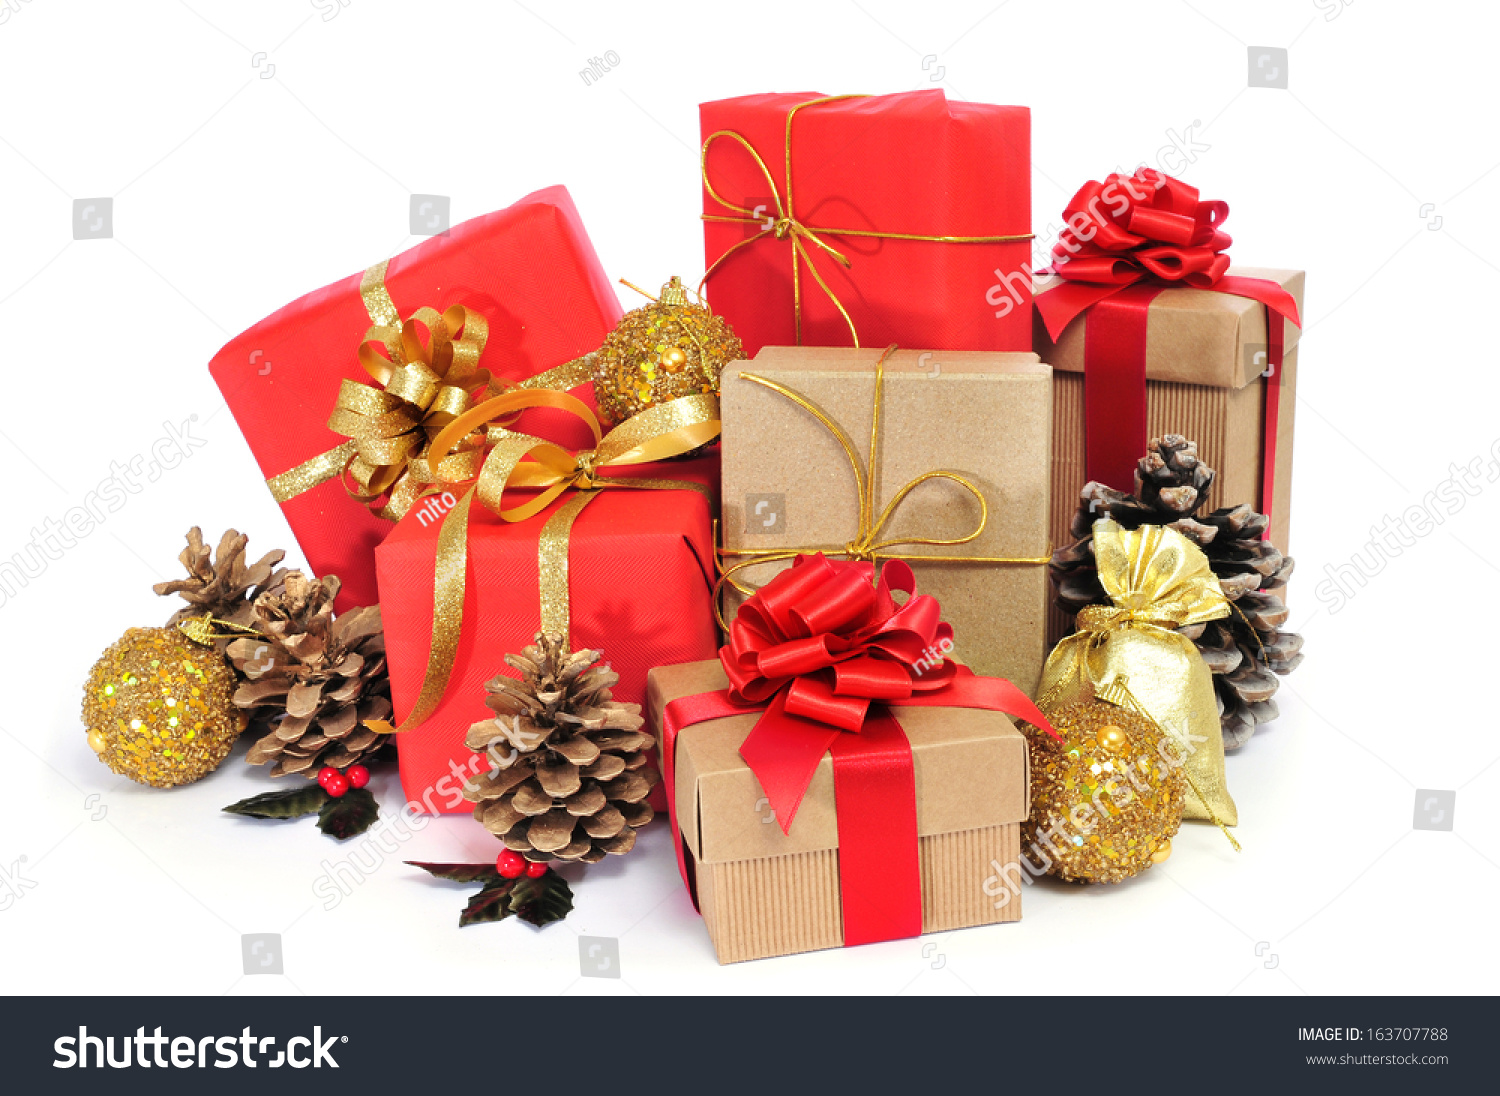 some christmas gifts wrapped with wrapping paper of different colors ...